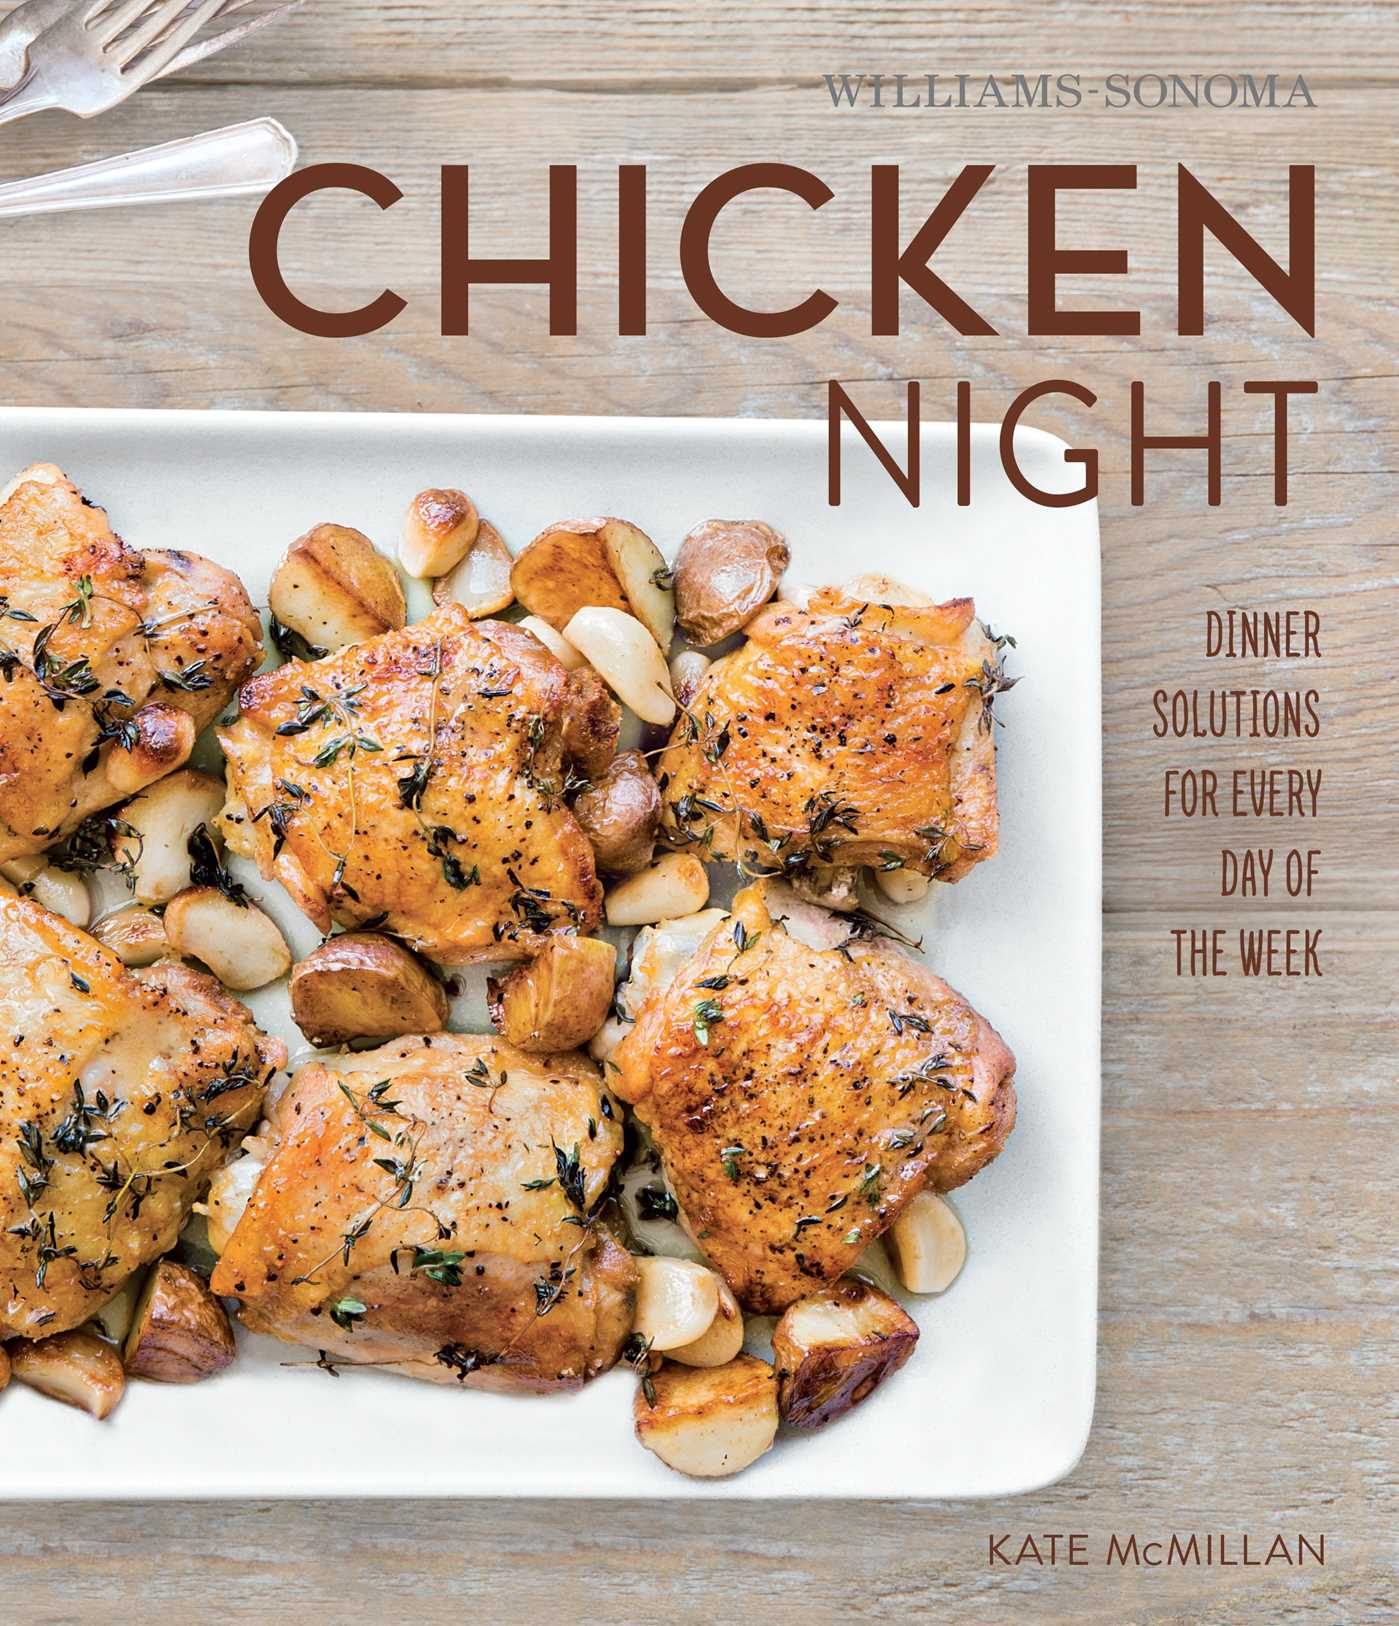 Chicken night (williams sonoma) 9781616287986 hr